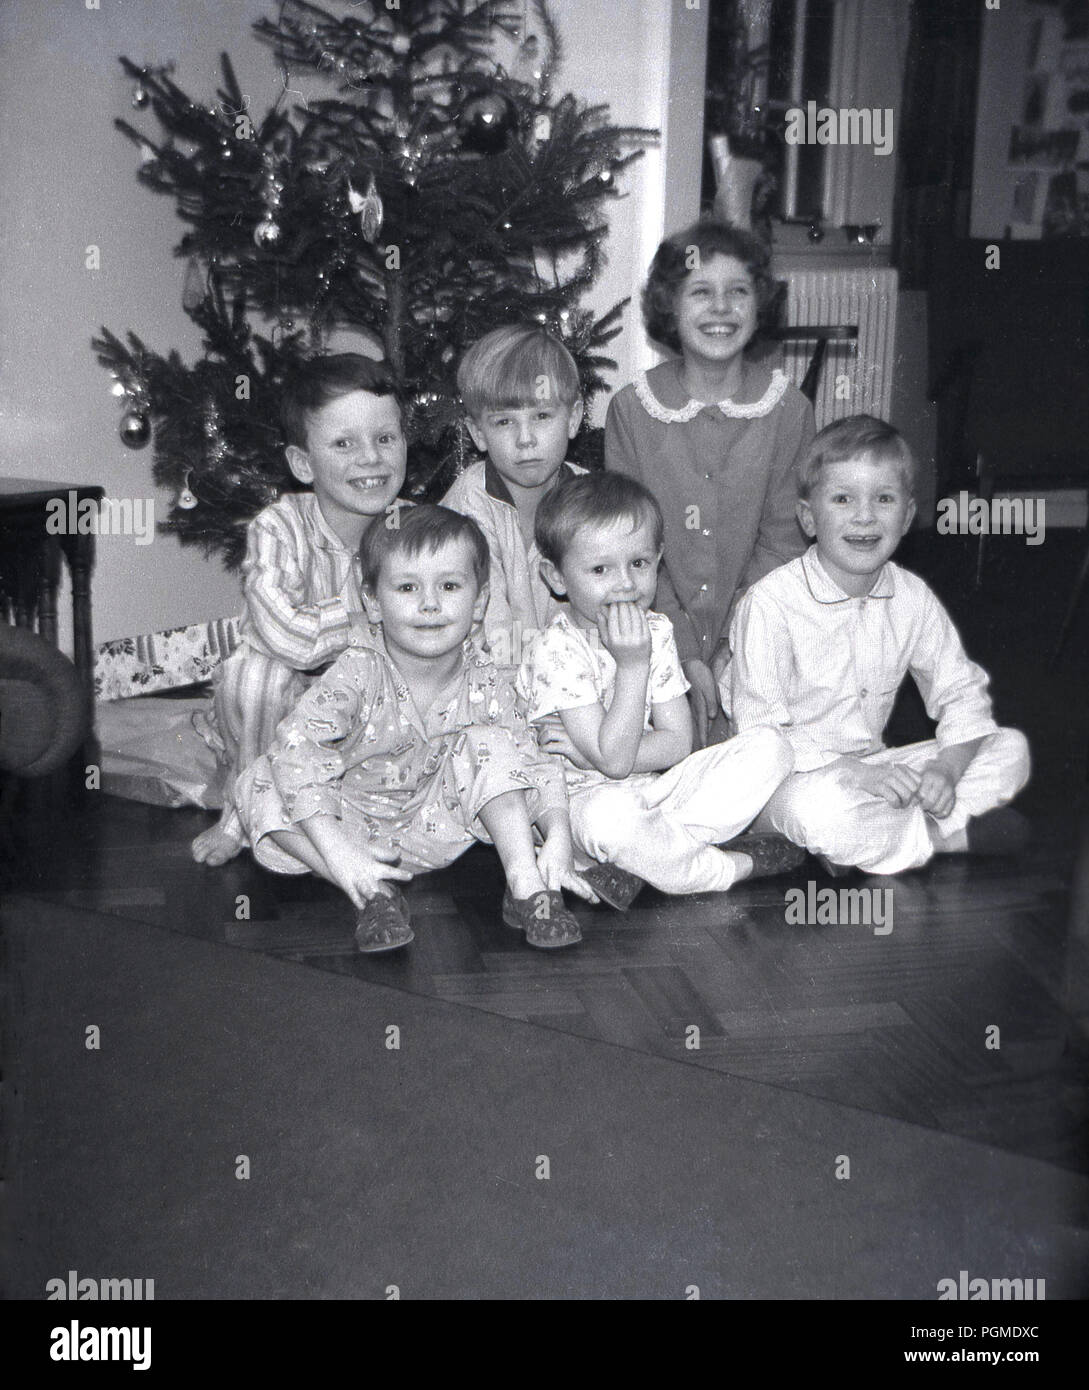 Black And White Children Christmas Tree High Resolution Stock Photography And Images Alamy